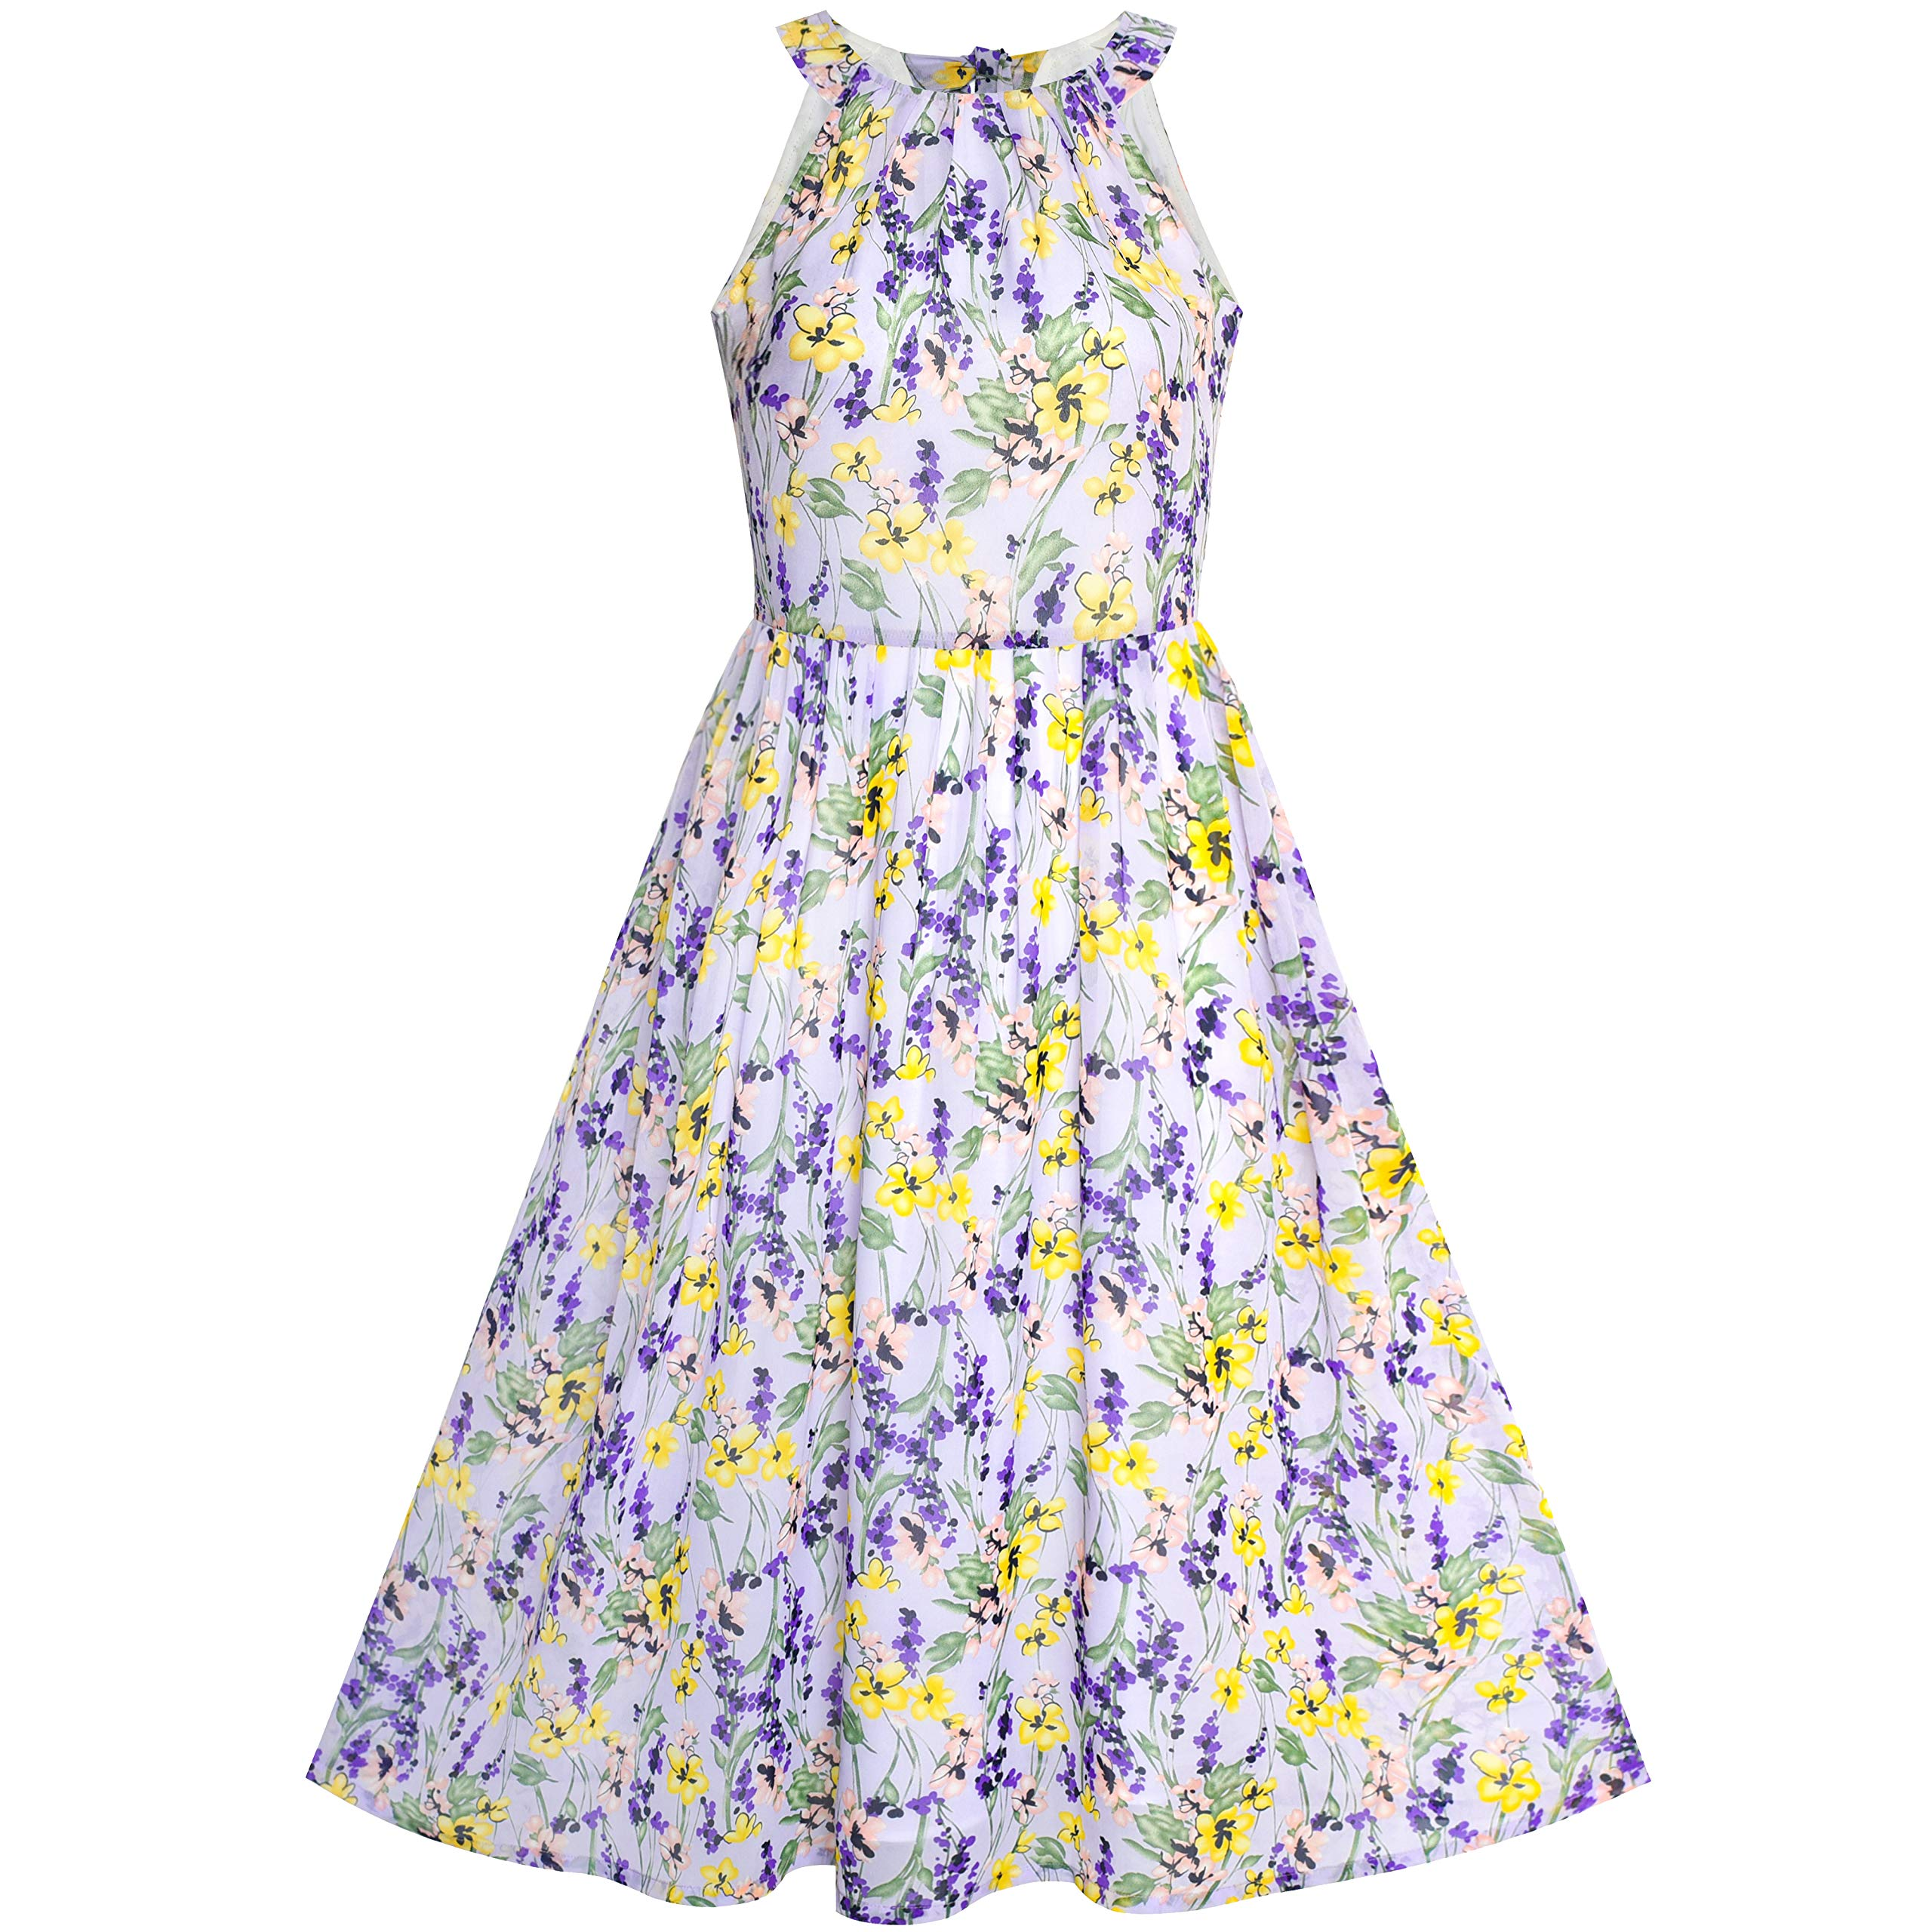 Available at Amazon: Sunny Fashion Women's Halter Purple Floral Printed Maxi Casual Party Dress